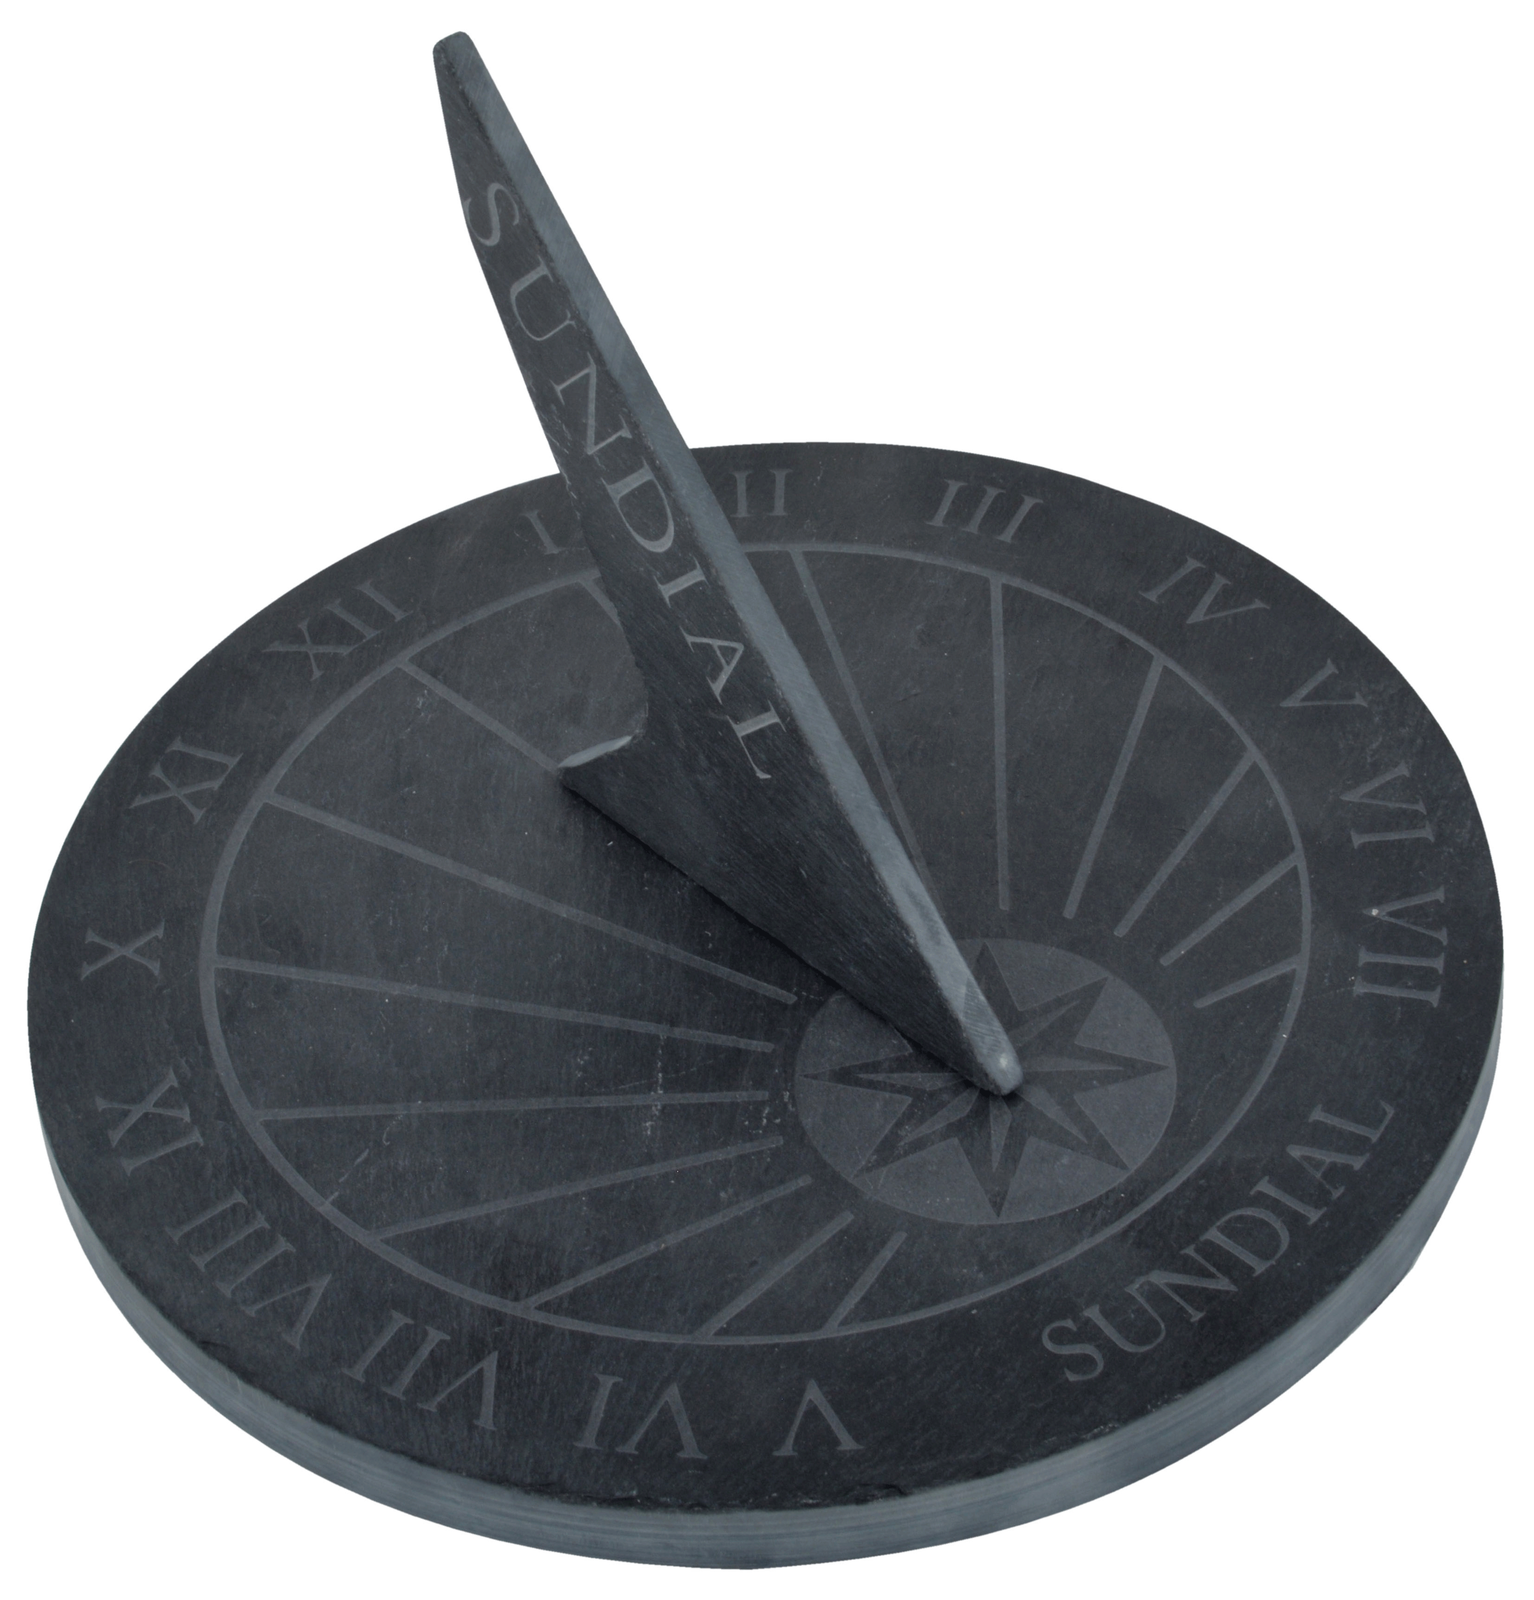 Sundial From Slate 25 CM Round Black Country Style Antique Garden - New